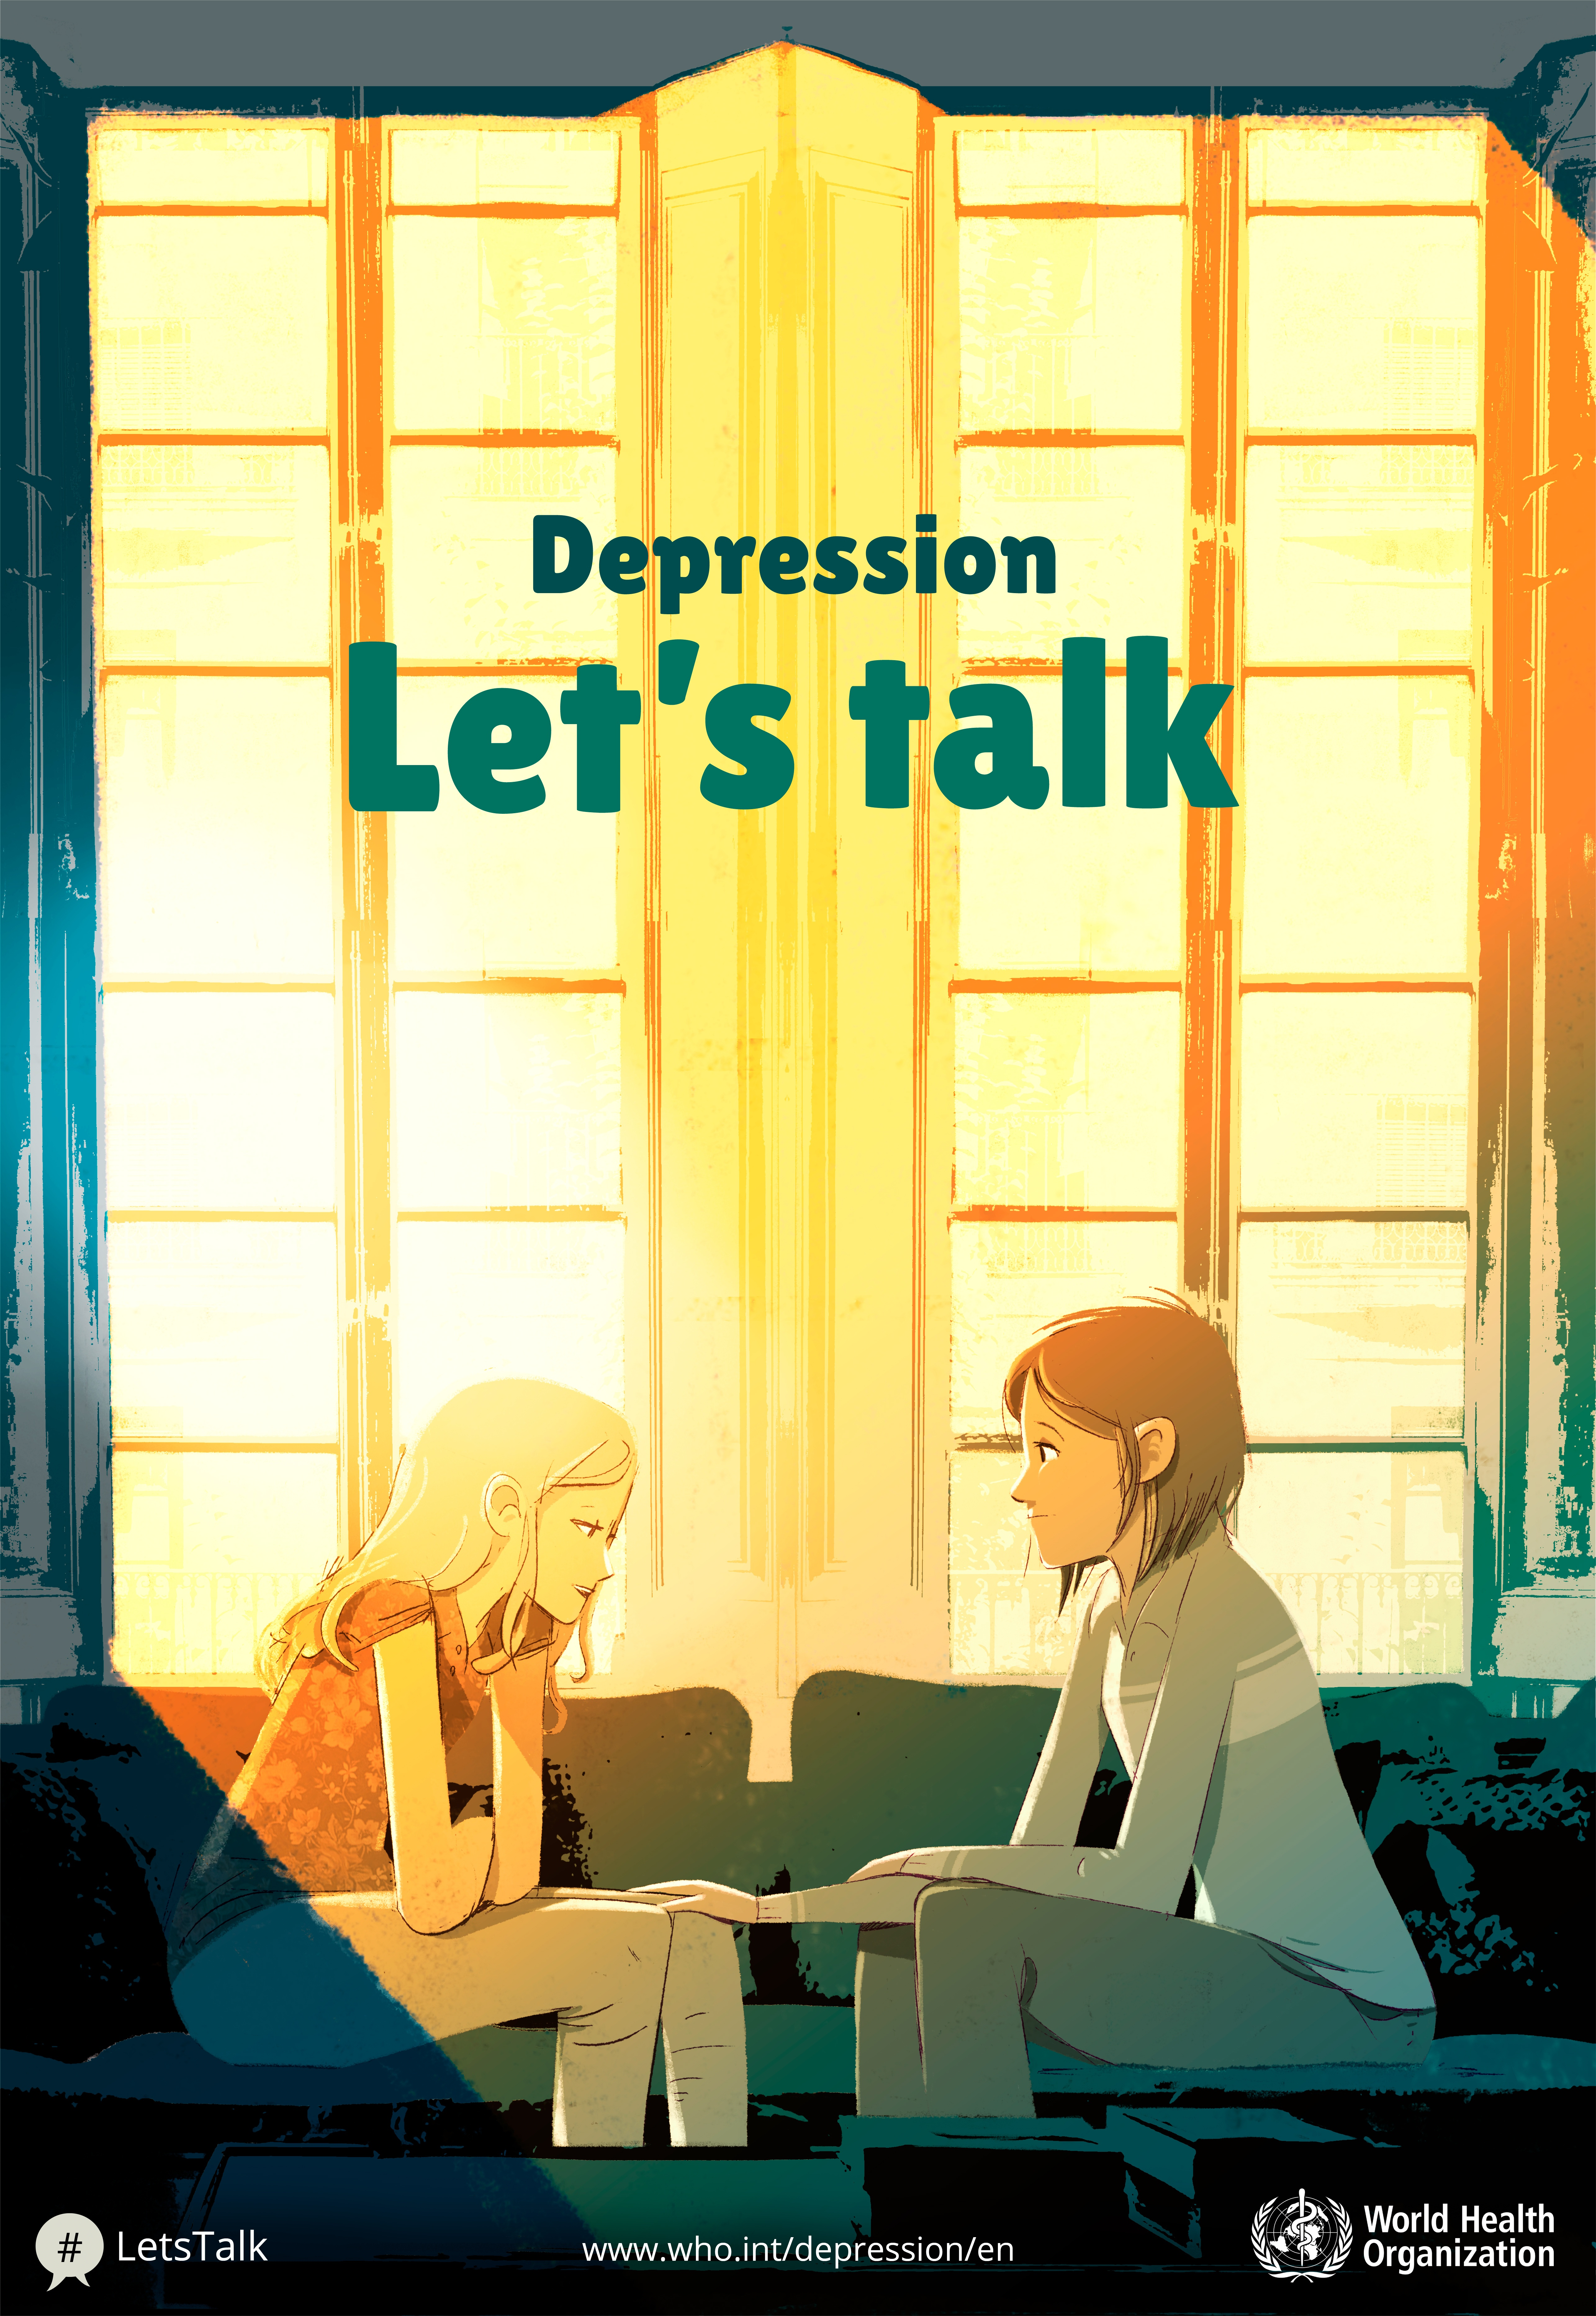 April 7th is World Health Day, and the 2017 theme is Depression: Let's Talk. Gambling depression in Arizona. We're here to help.